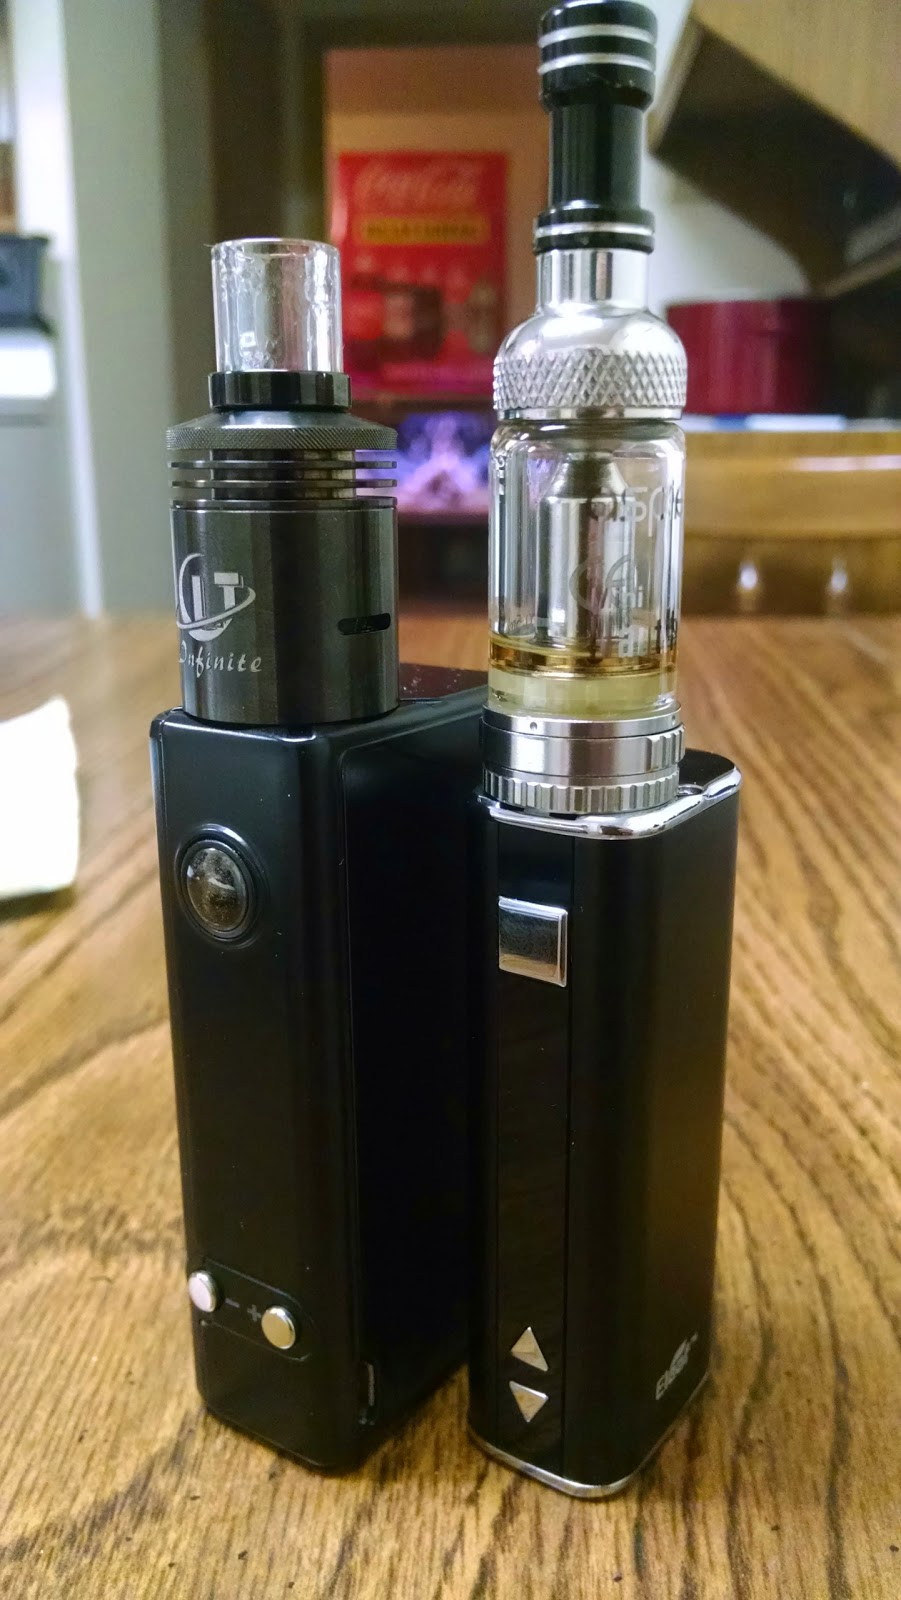 iStick 20W and iStick 30W, which one you like more